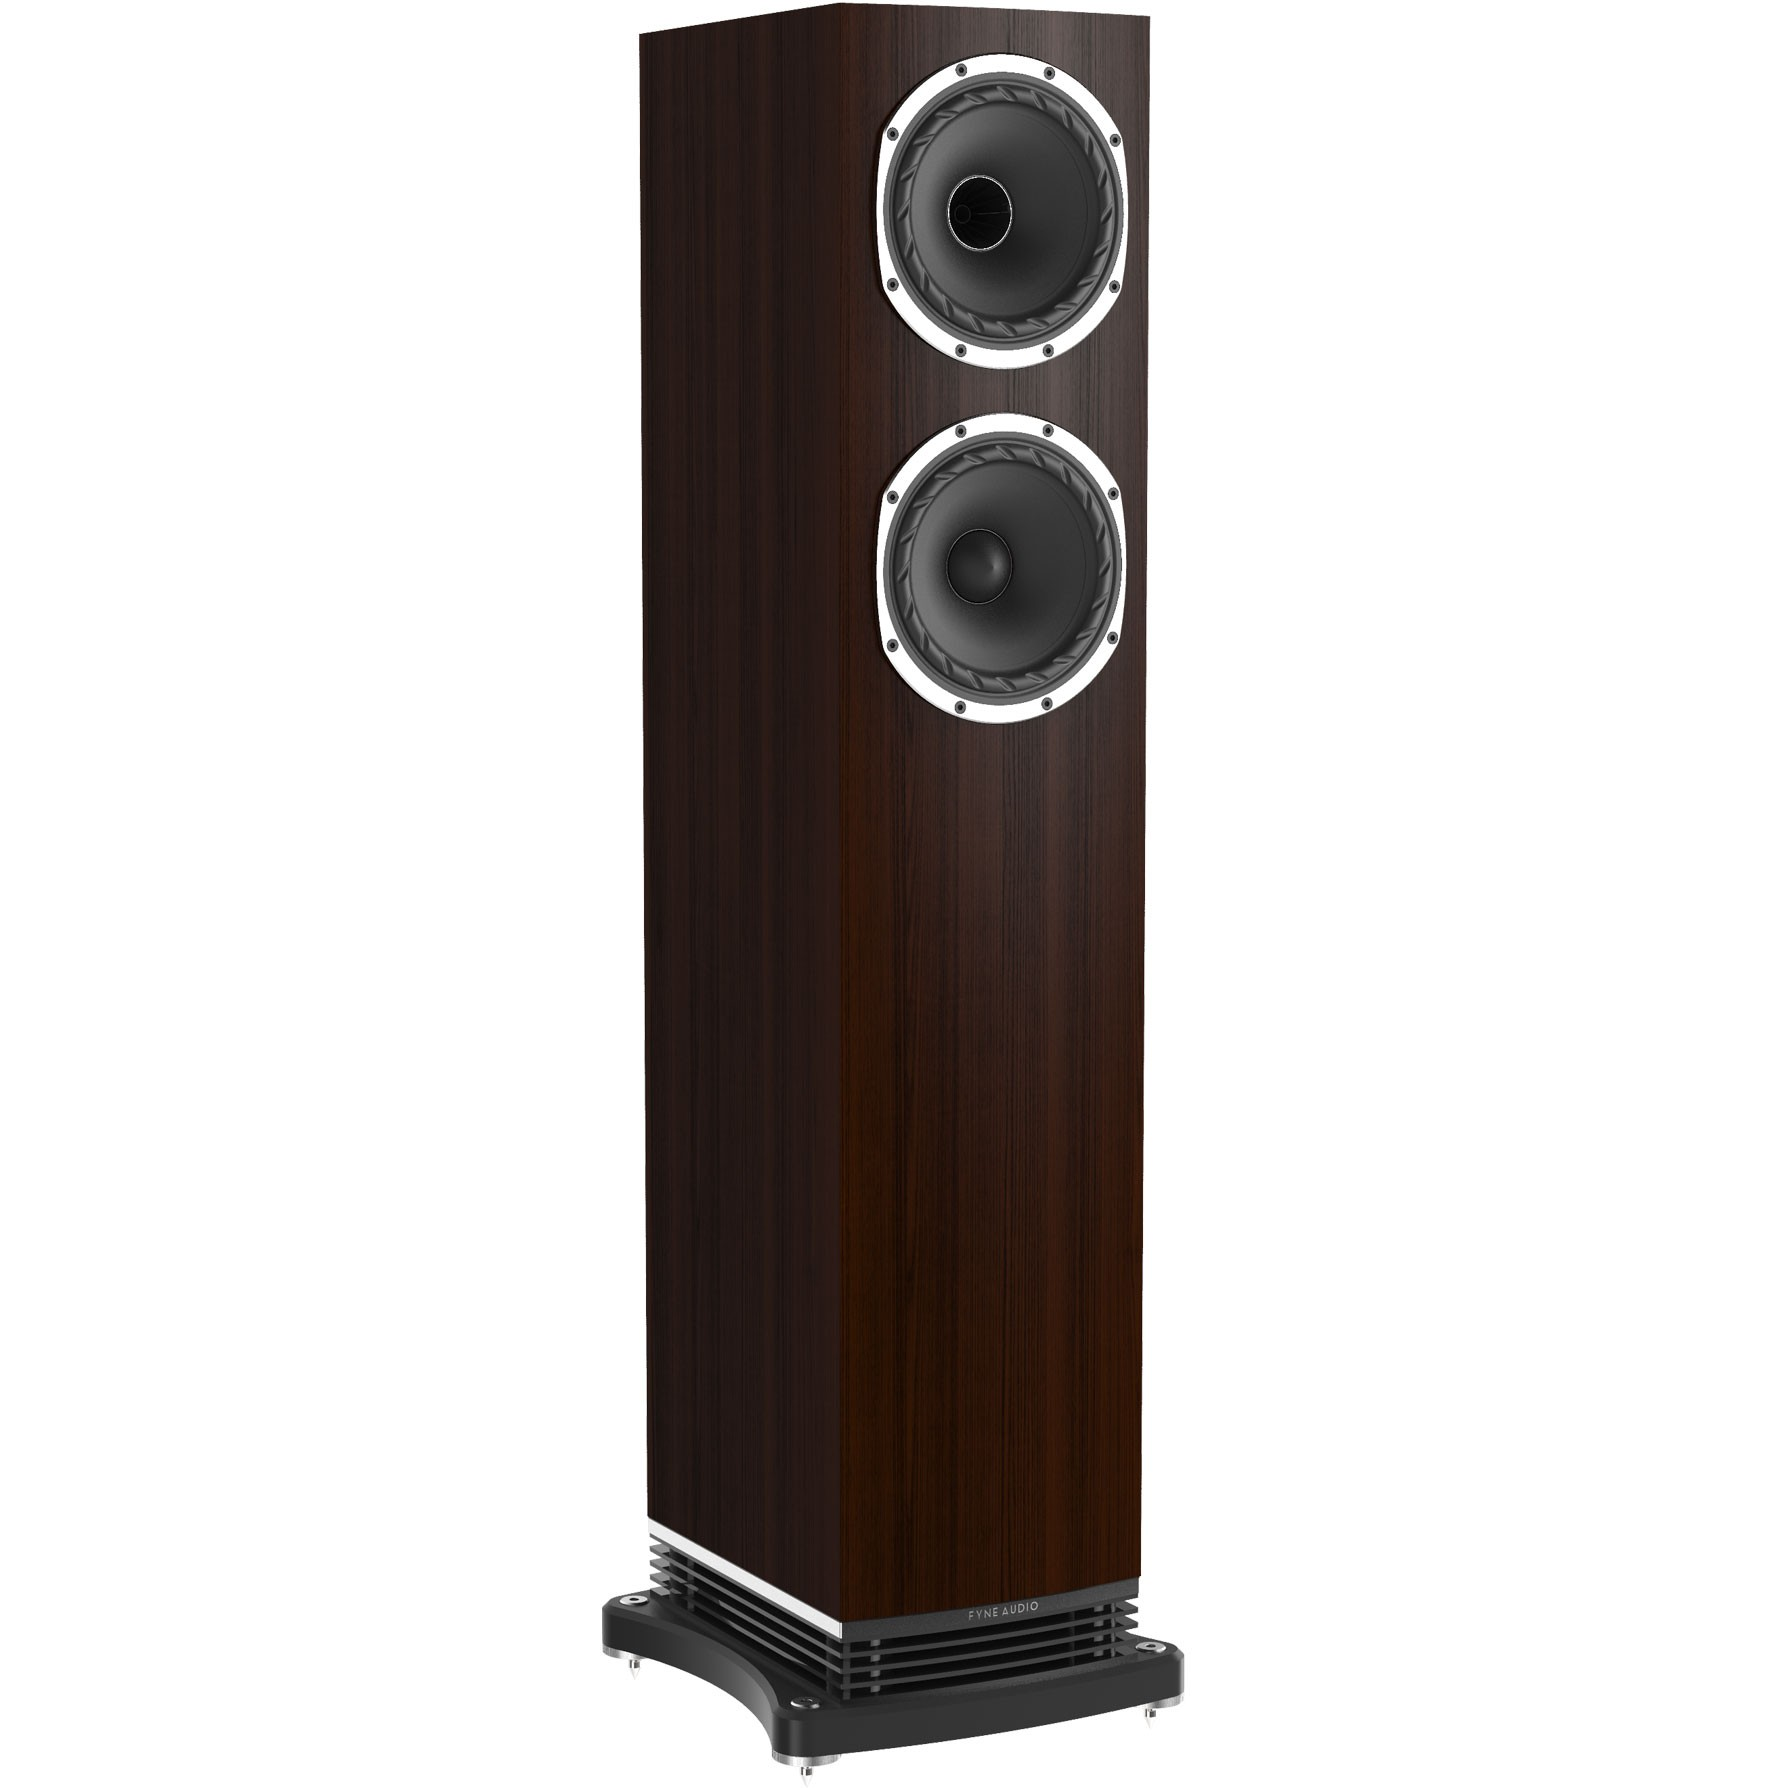 Fyne Audio F501 floor standing loudspeakers